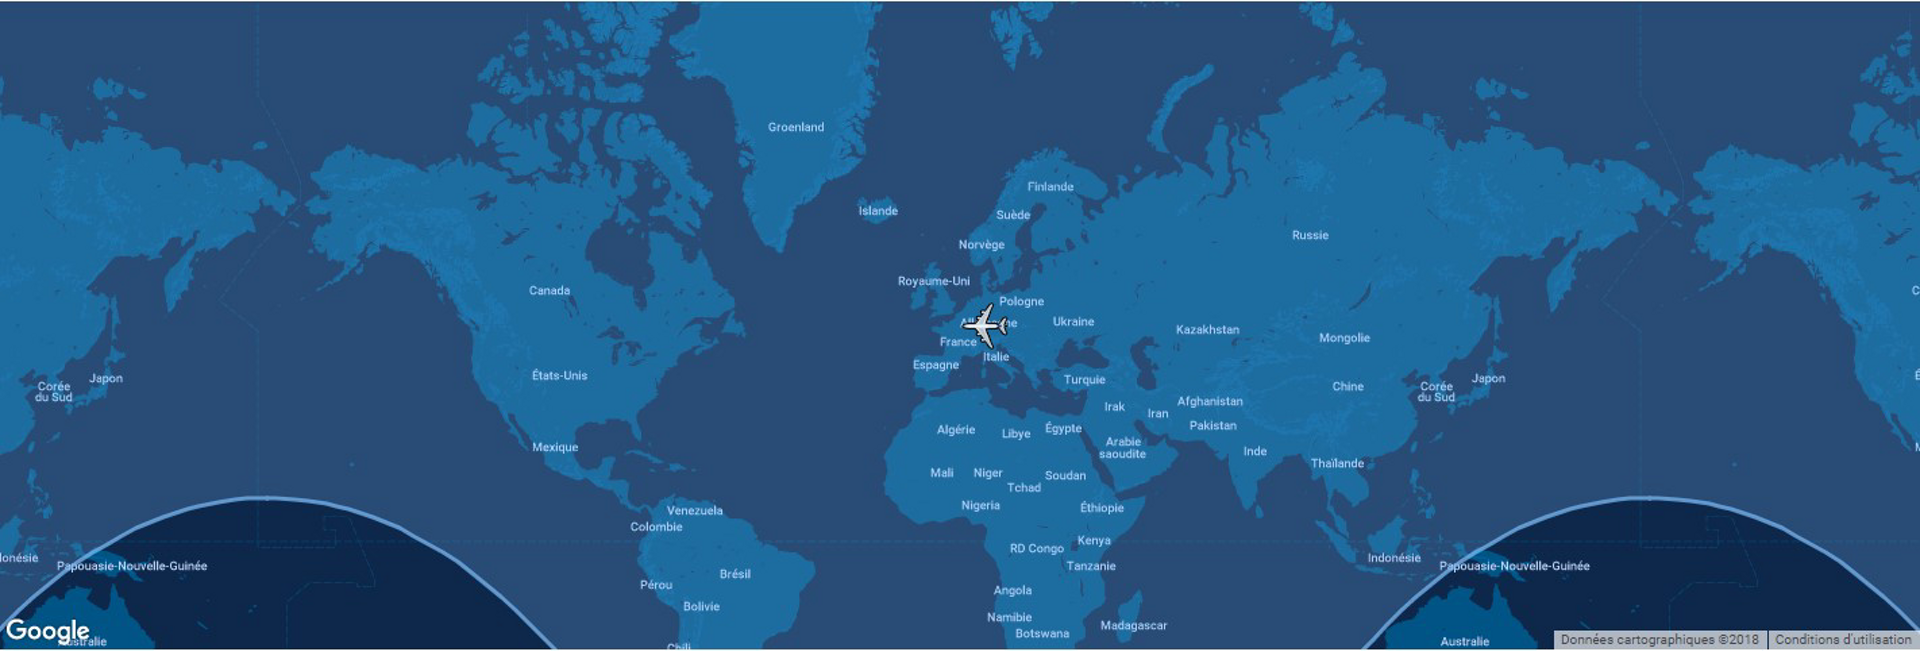 The typical range for Airbus' A330-900 commercial aircraft is shown in this diagram, which includes a global map.